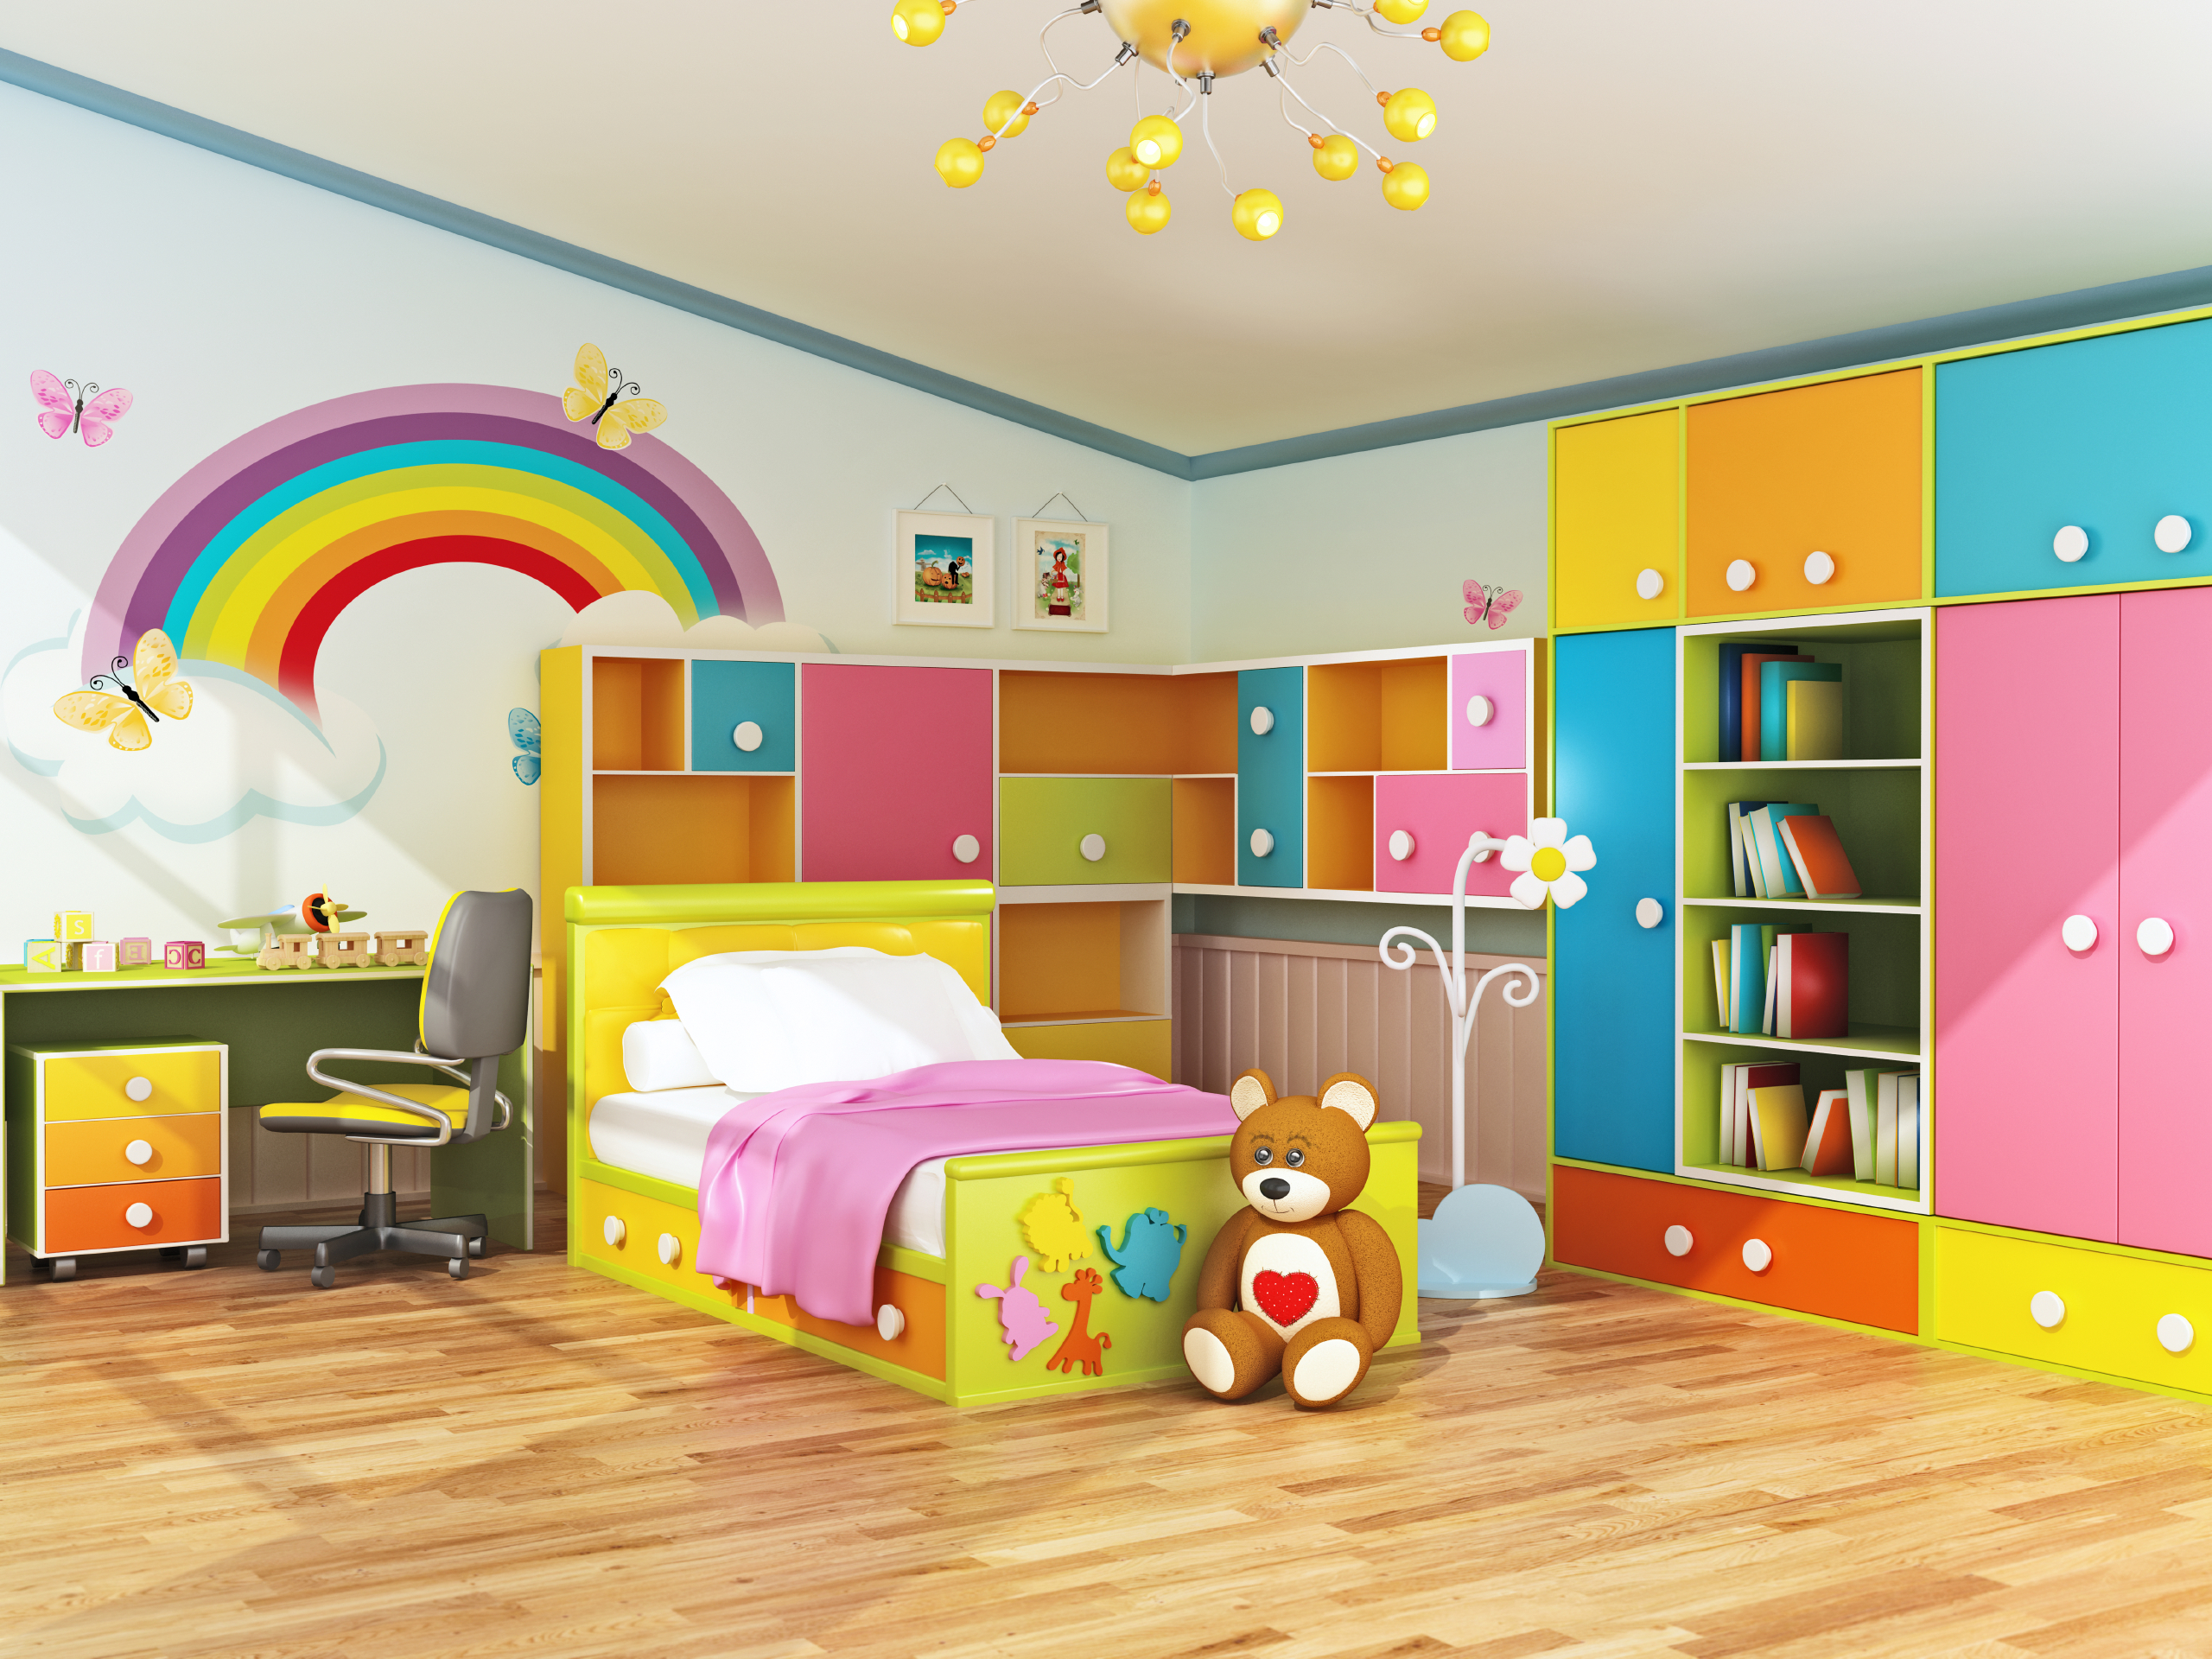 Plan Ahead When Decorating Kids\' Bedrooms | RISMedia\\'s ...